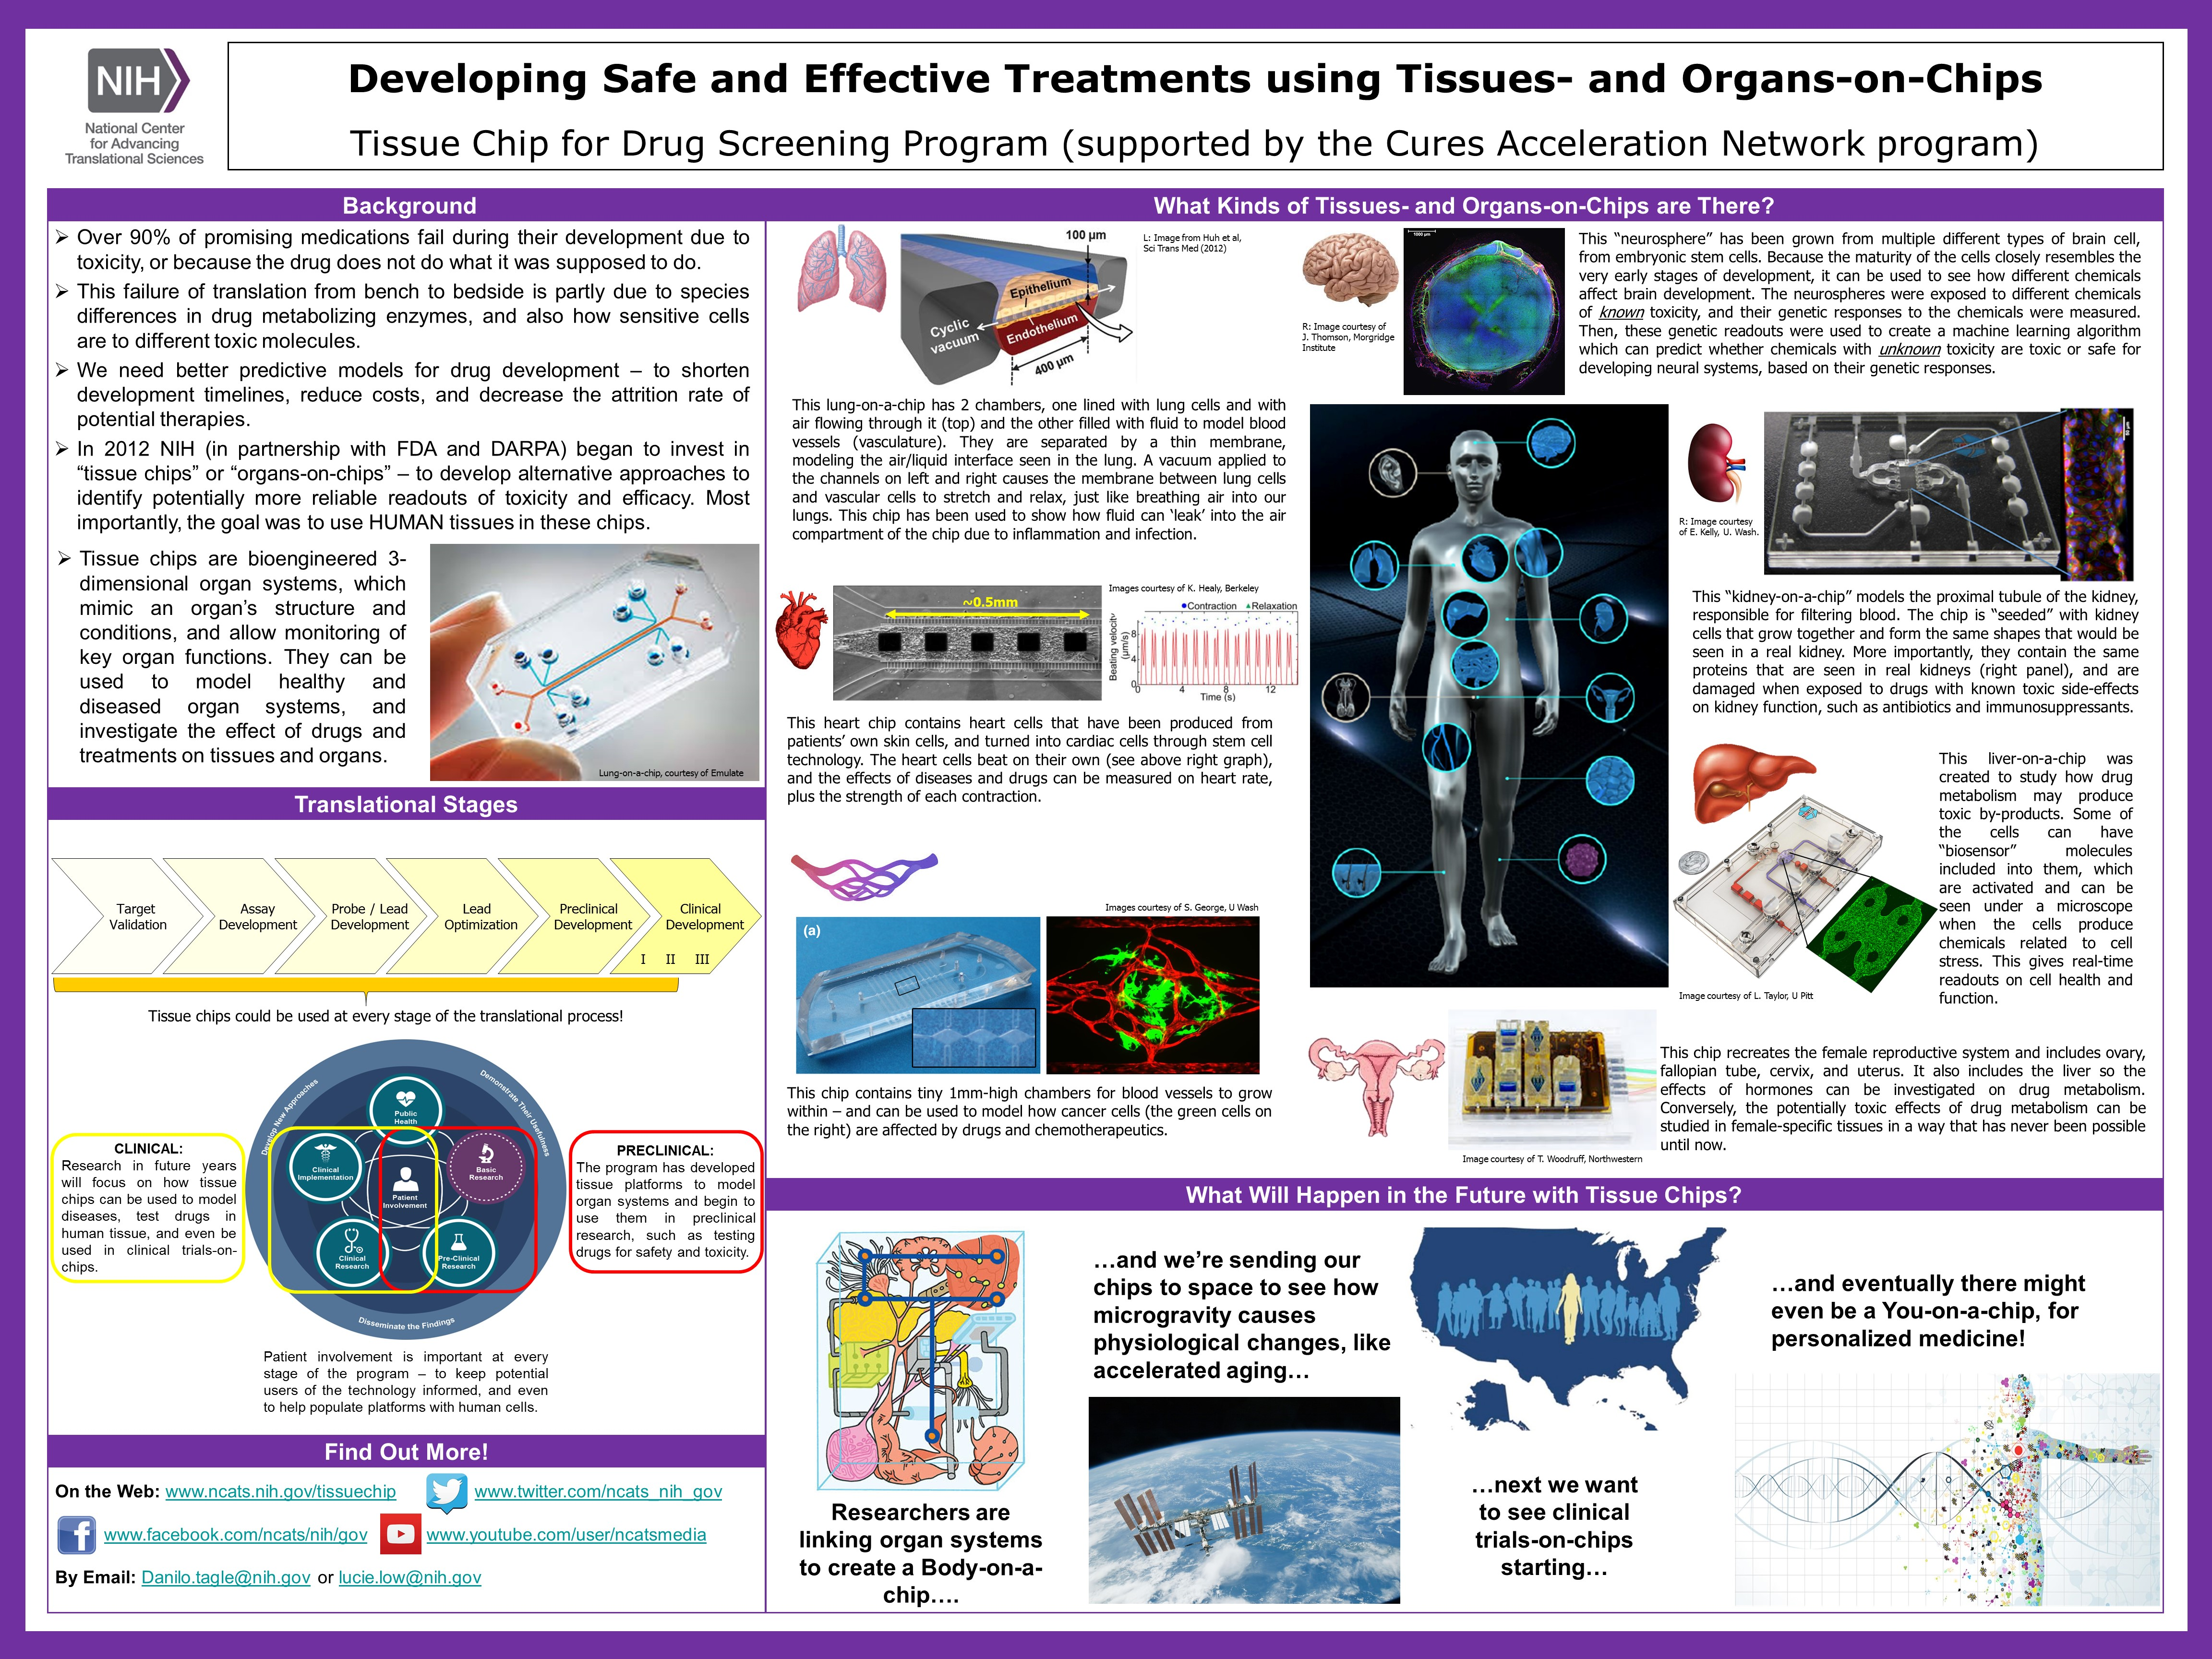 This NCATS Day poster provides background on the Tissue Chip for Drug Screening program, including goals, where it falls within the path of drug and therapeutics development and the translational science spectrum, how patients and advocates can get involved, and how NCATS addresses scientific and operational challenges.